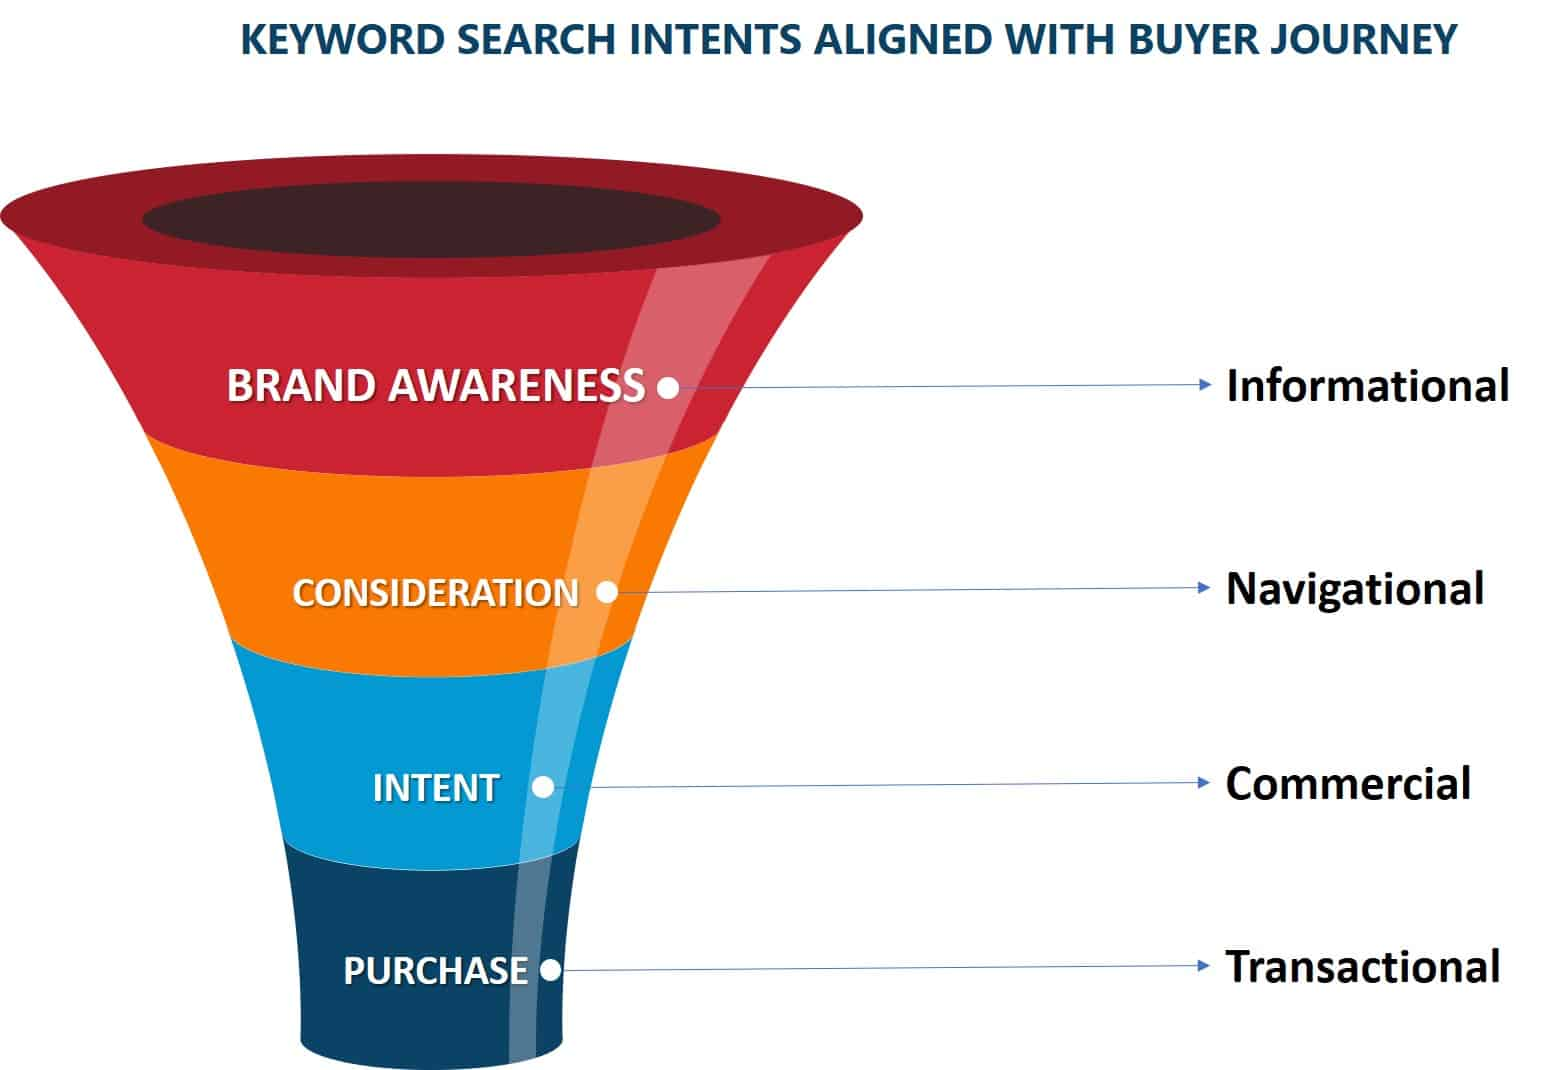 search intent for keywords aligned with buyer journey